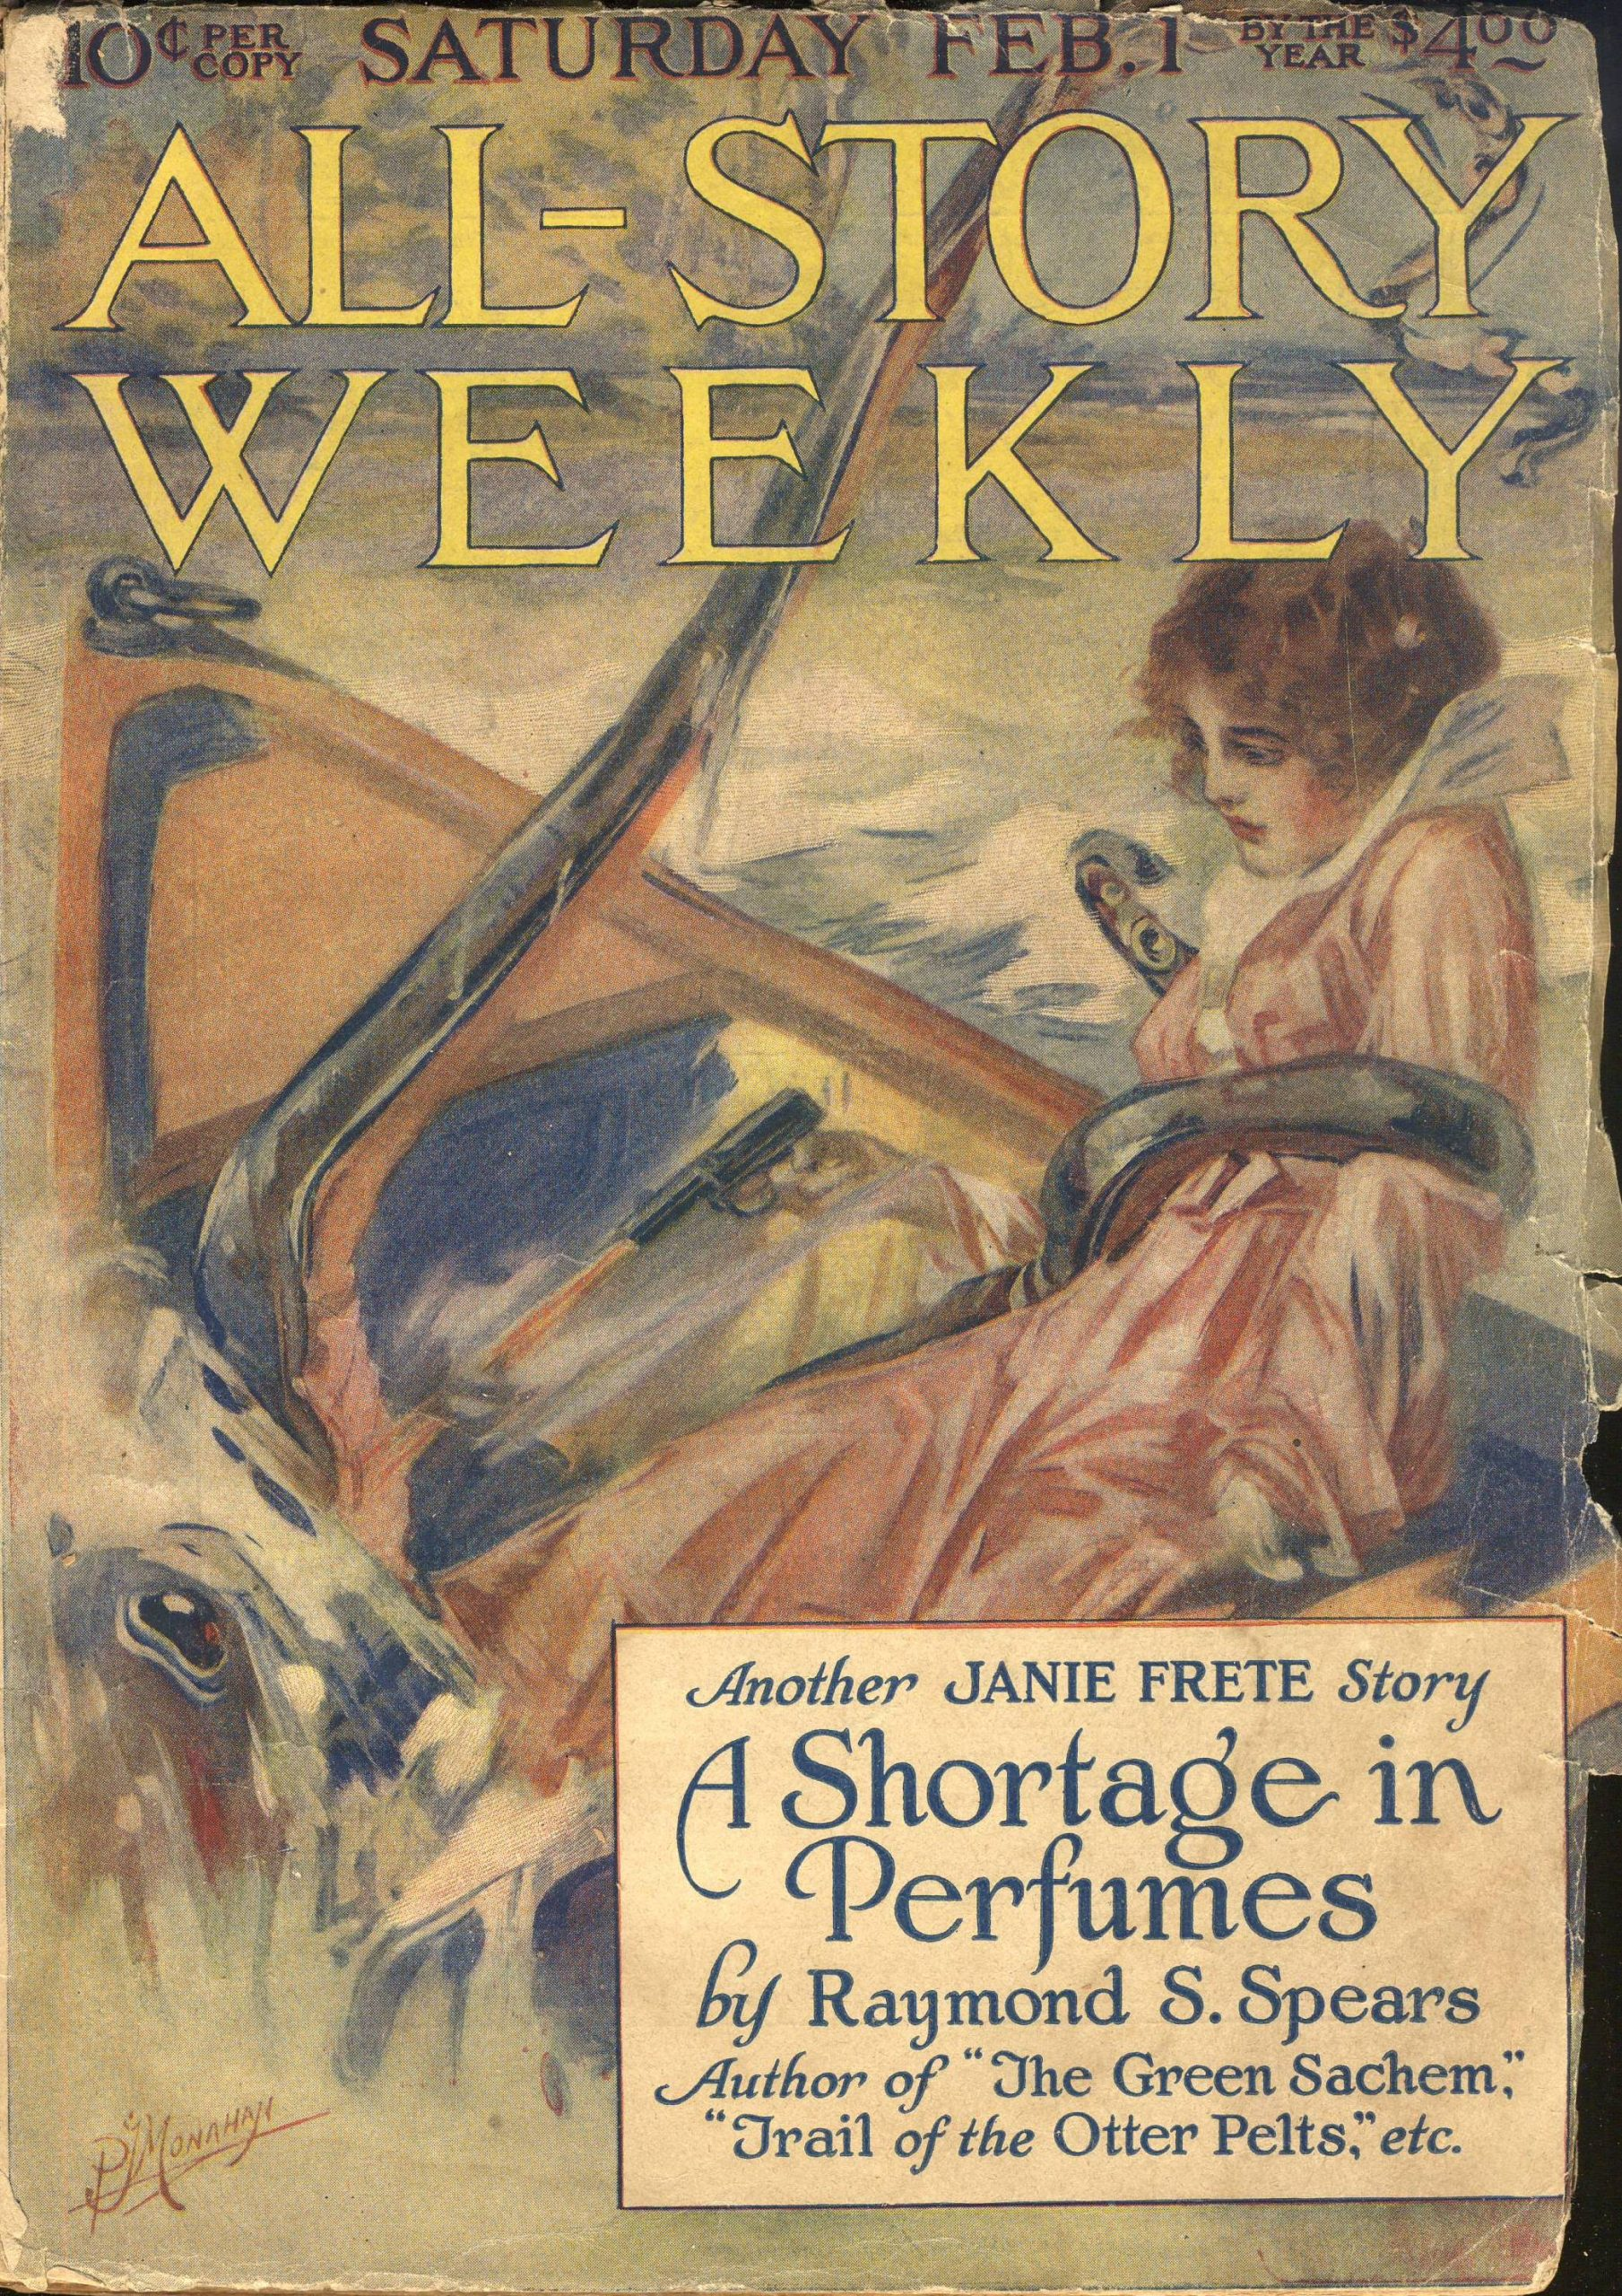 All Story Weekly, 1919